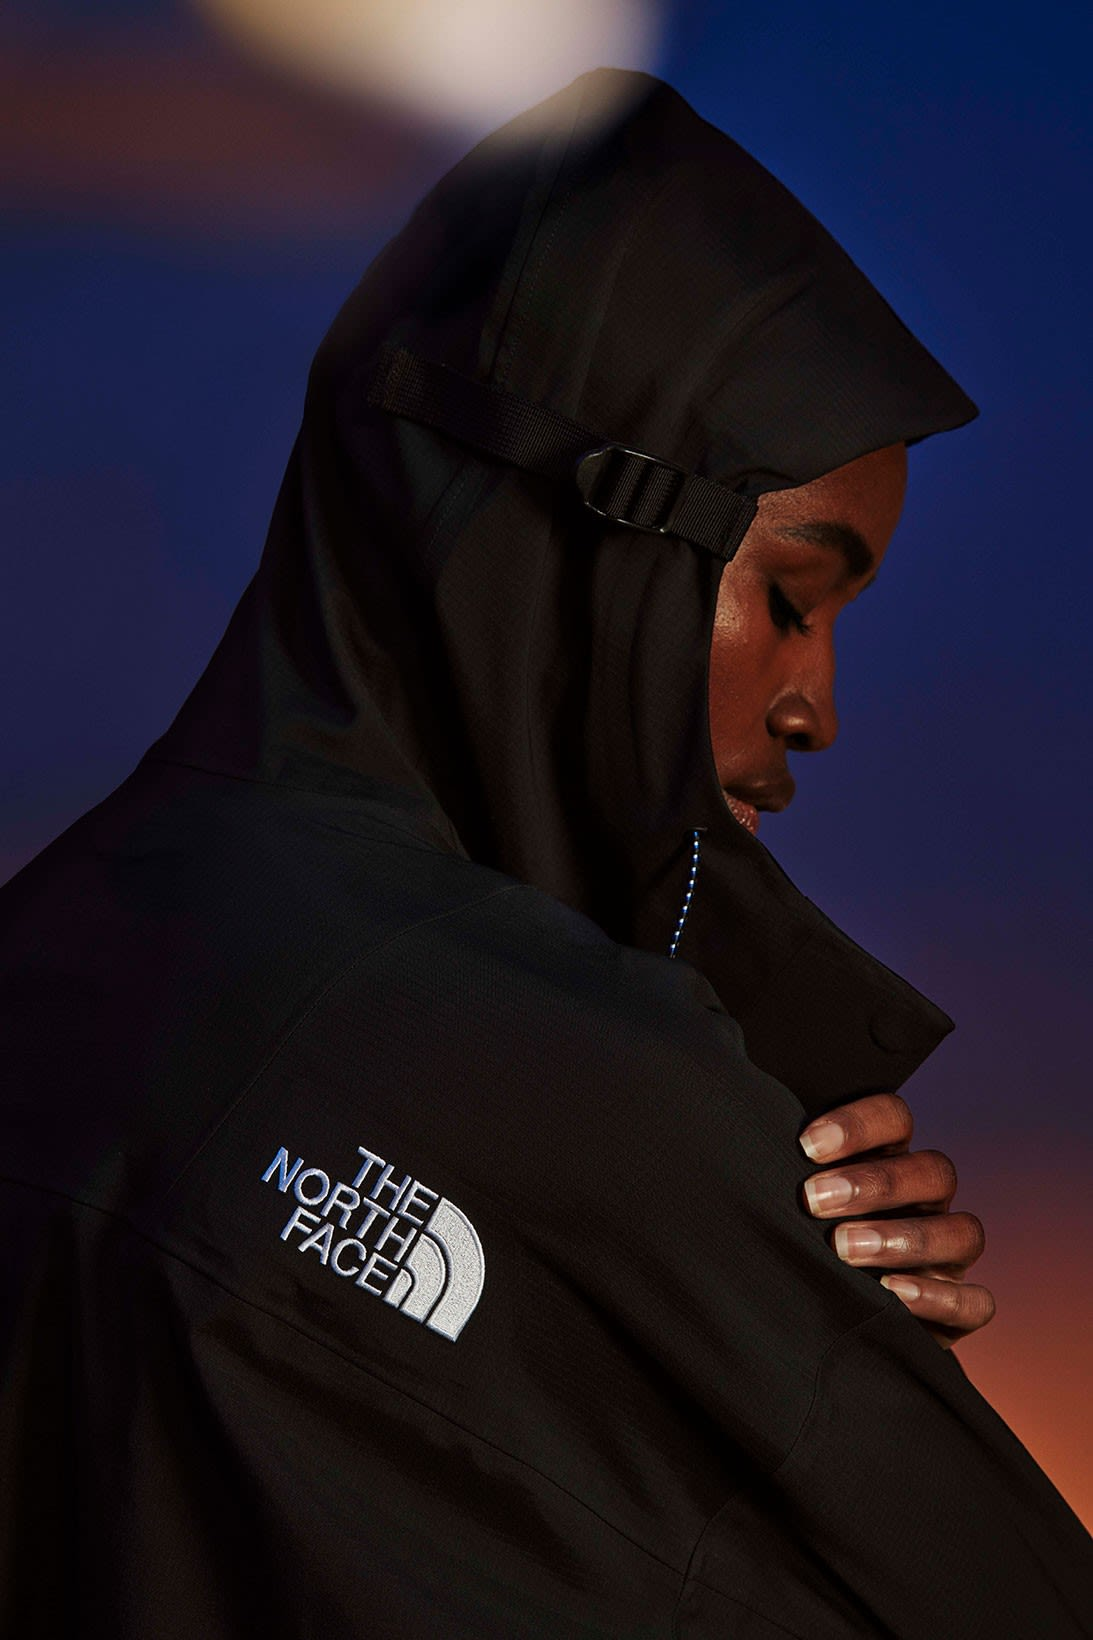 The North Face Apply Minimalist Silhouettes And Technical